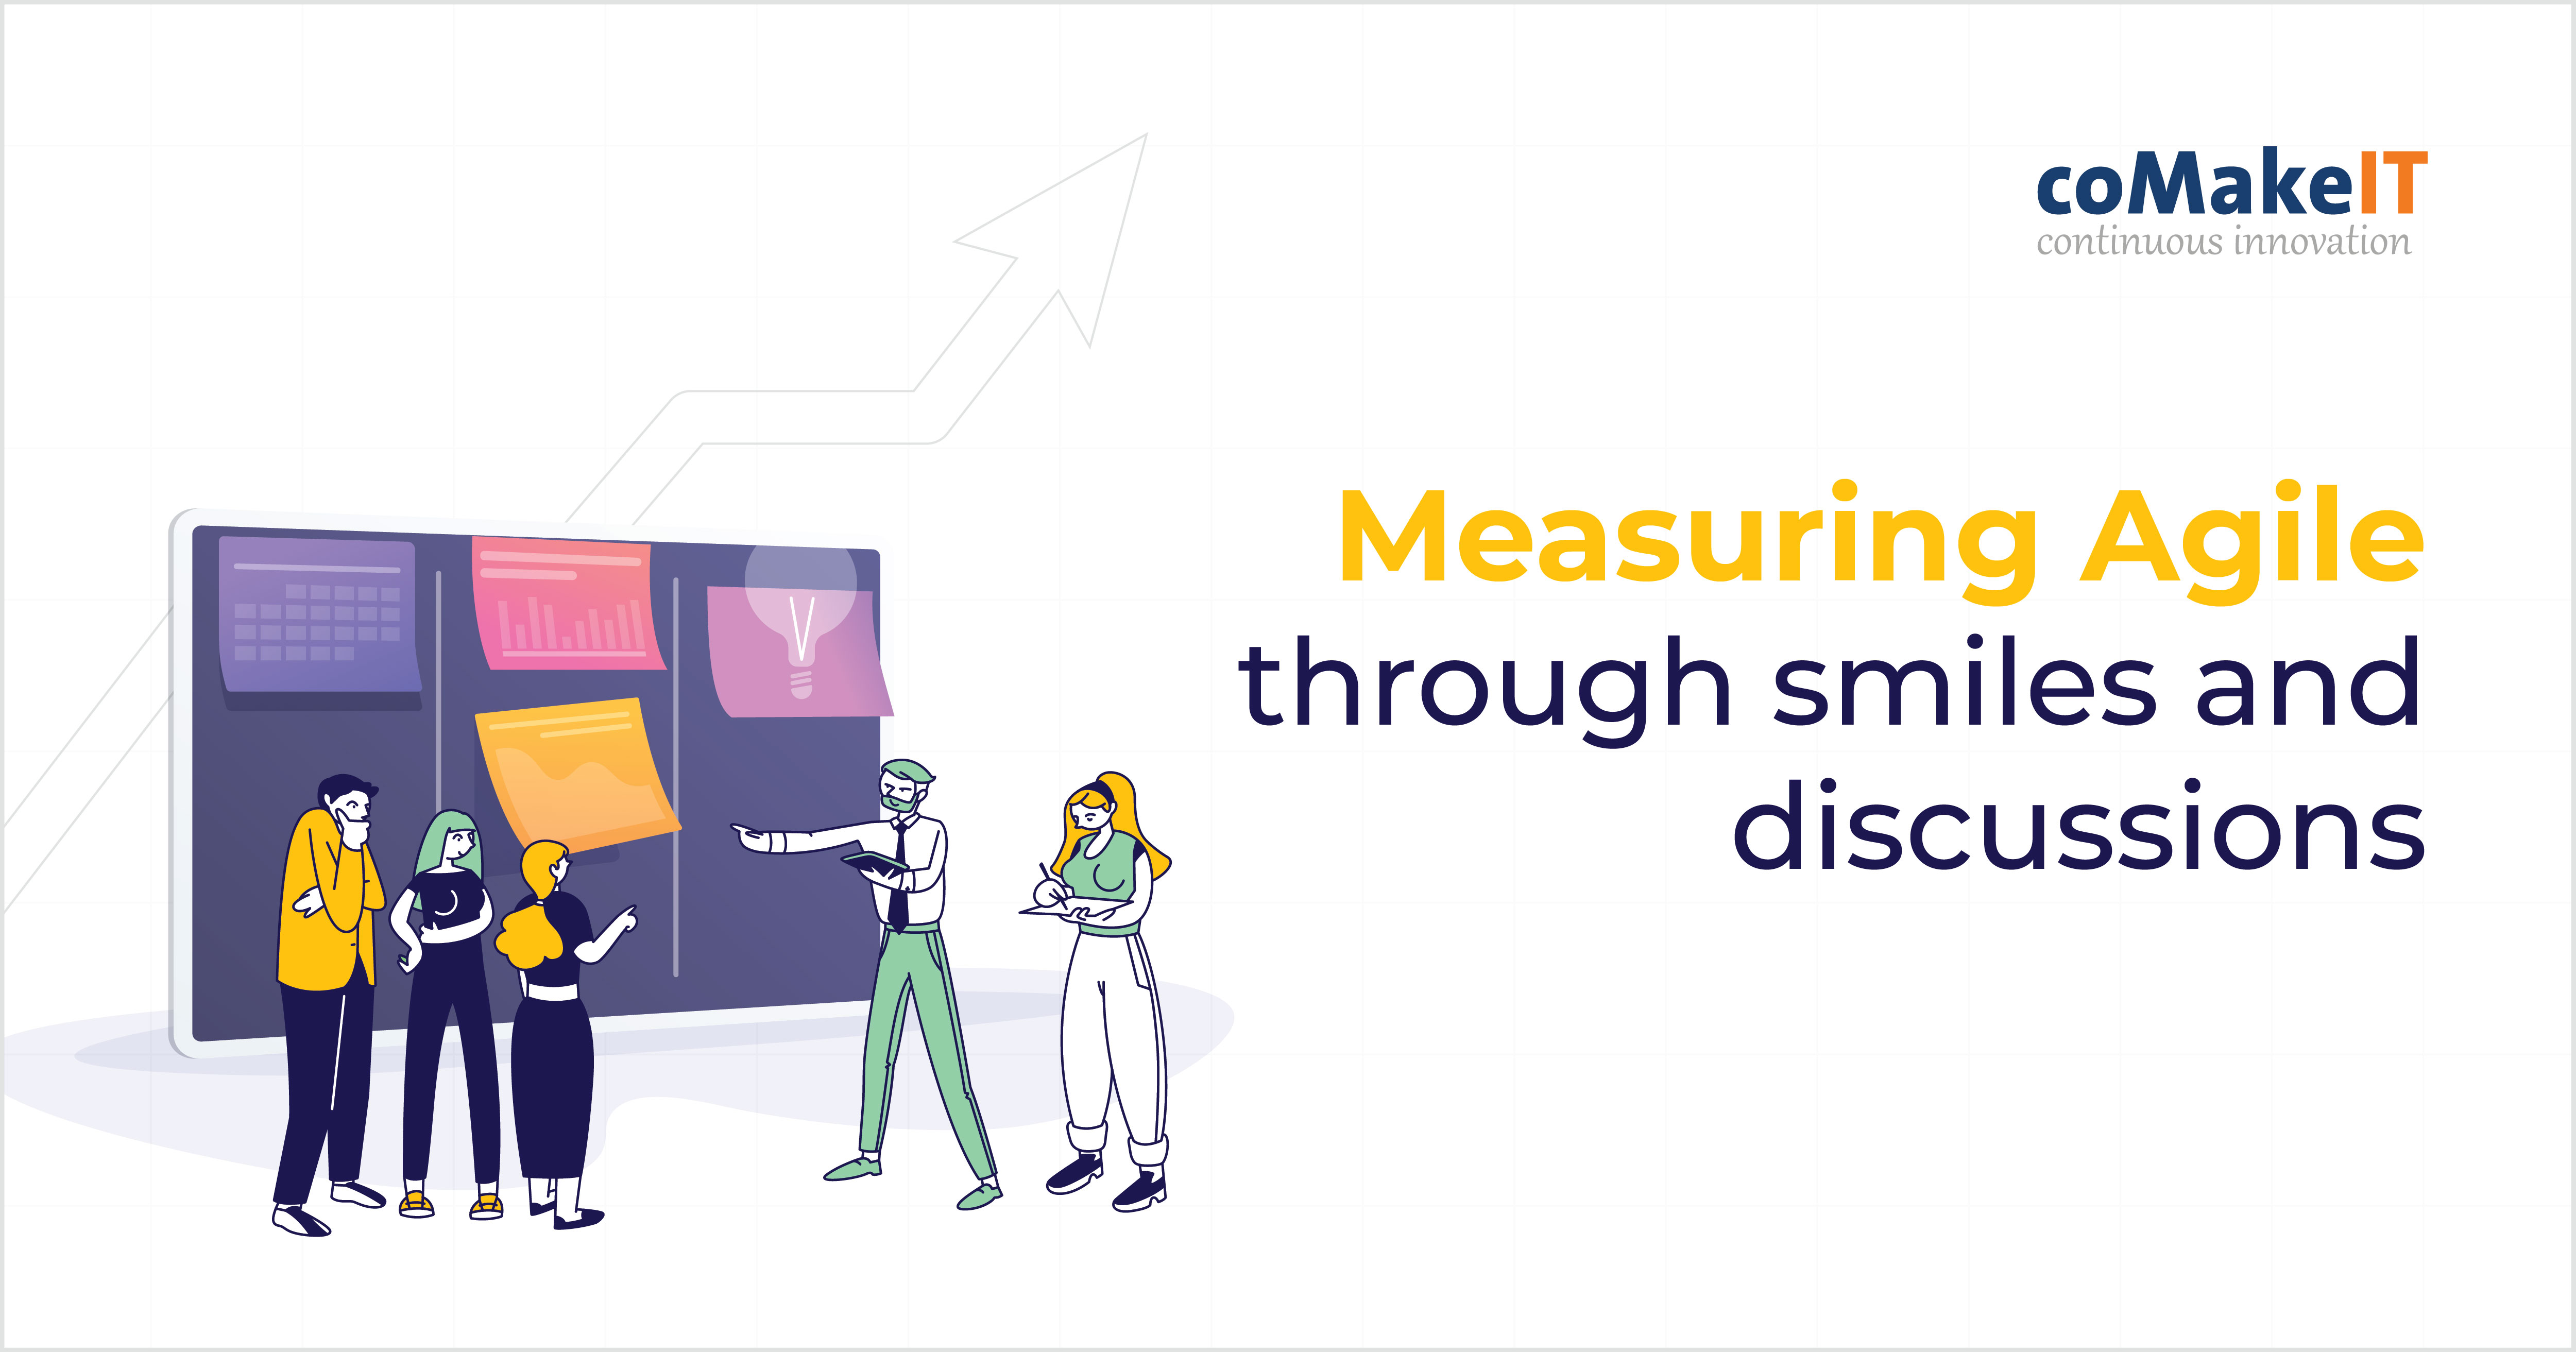 Measuring Agile through smiles and discussions